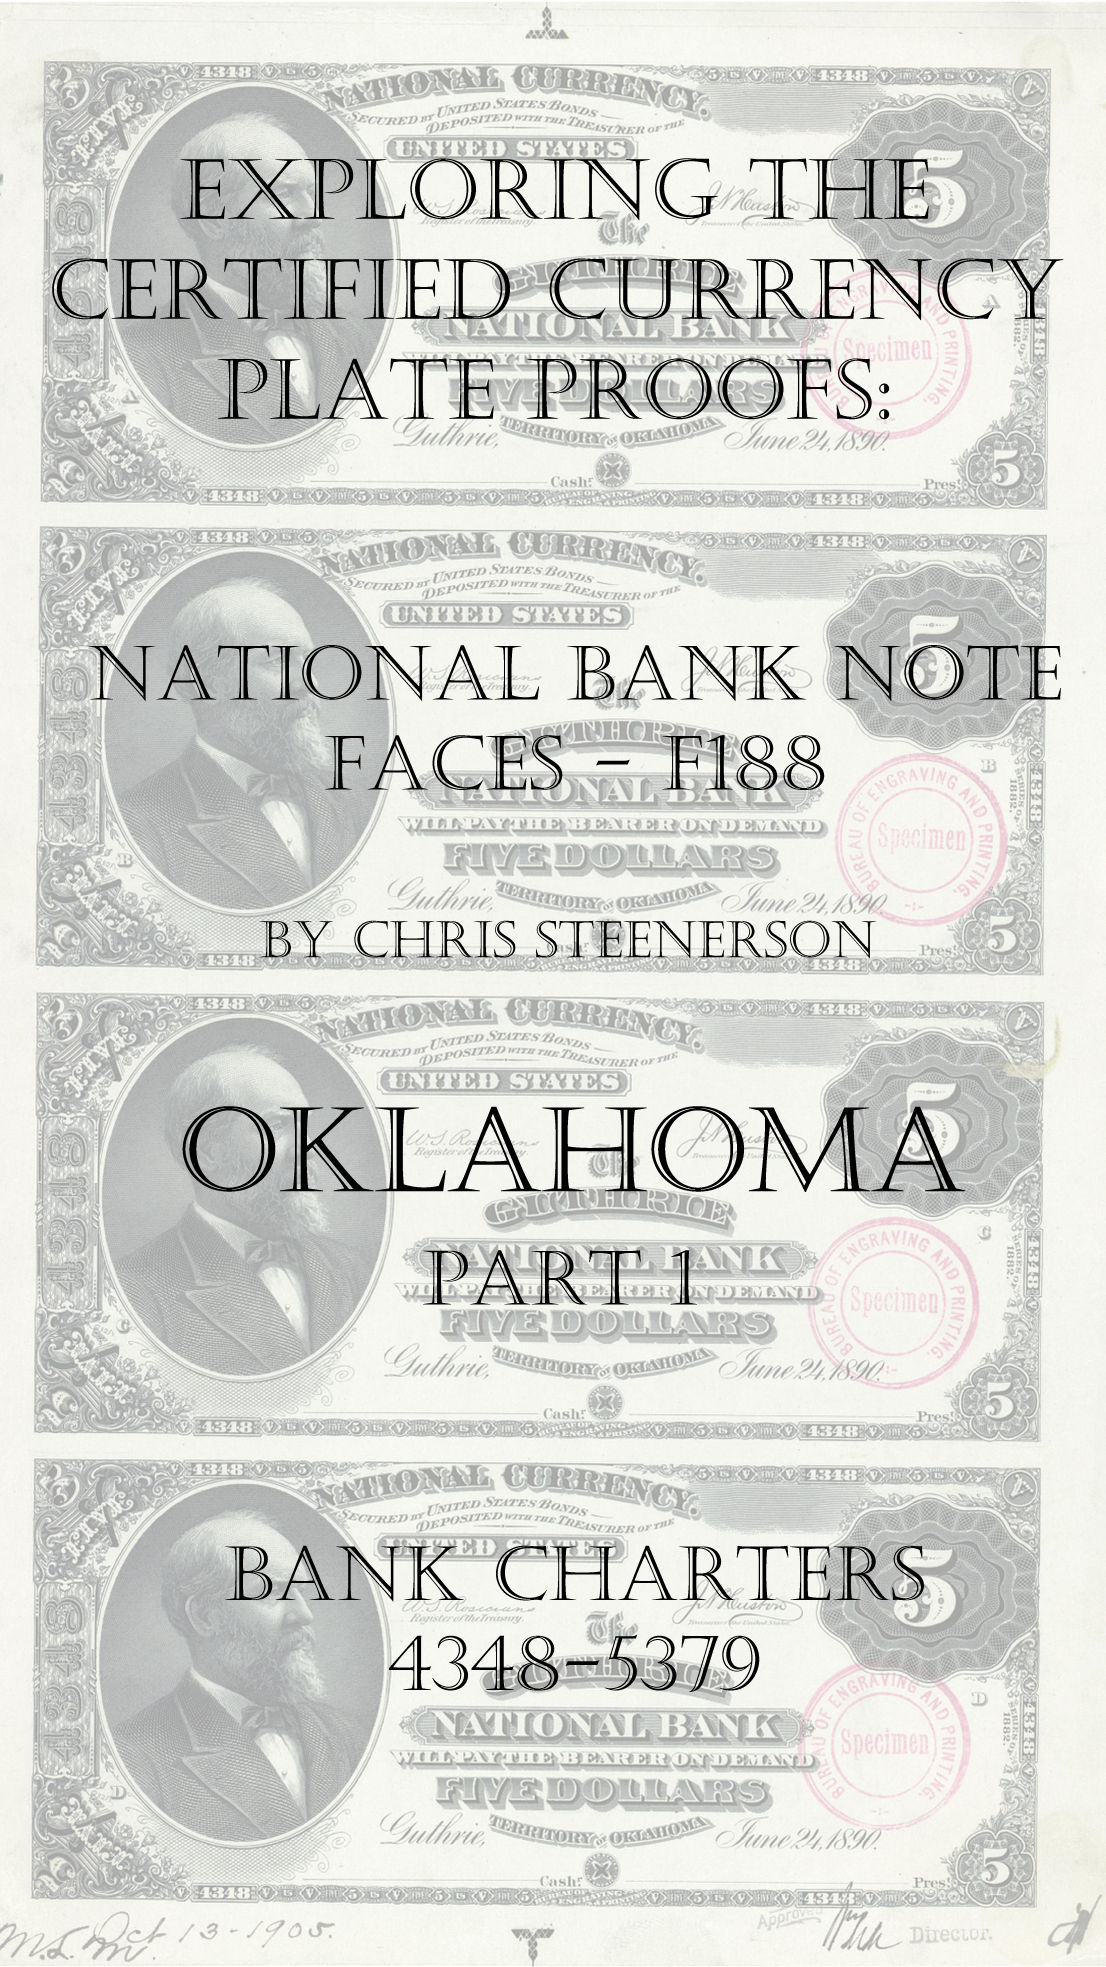 Oklahoma National Bank Note Currency Proofs